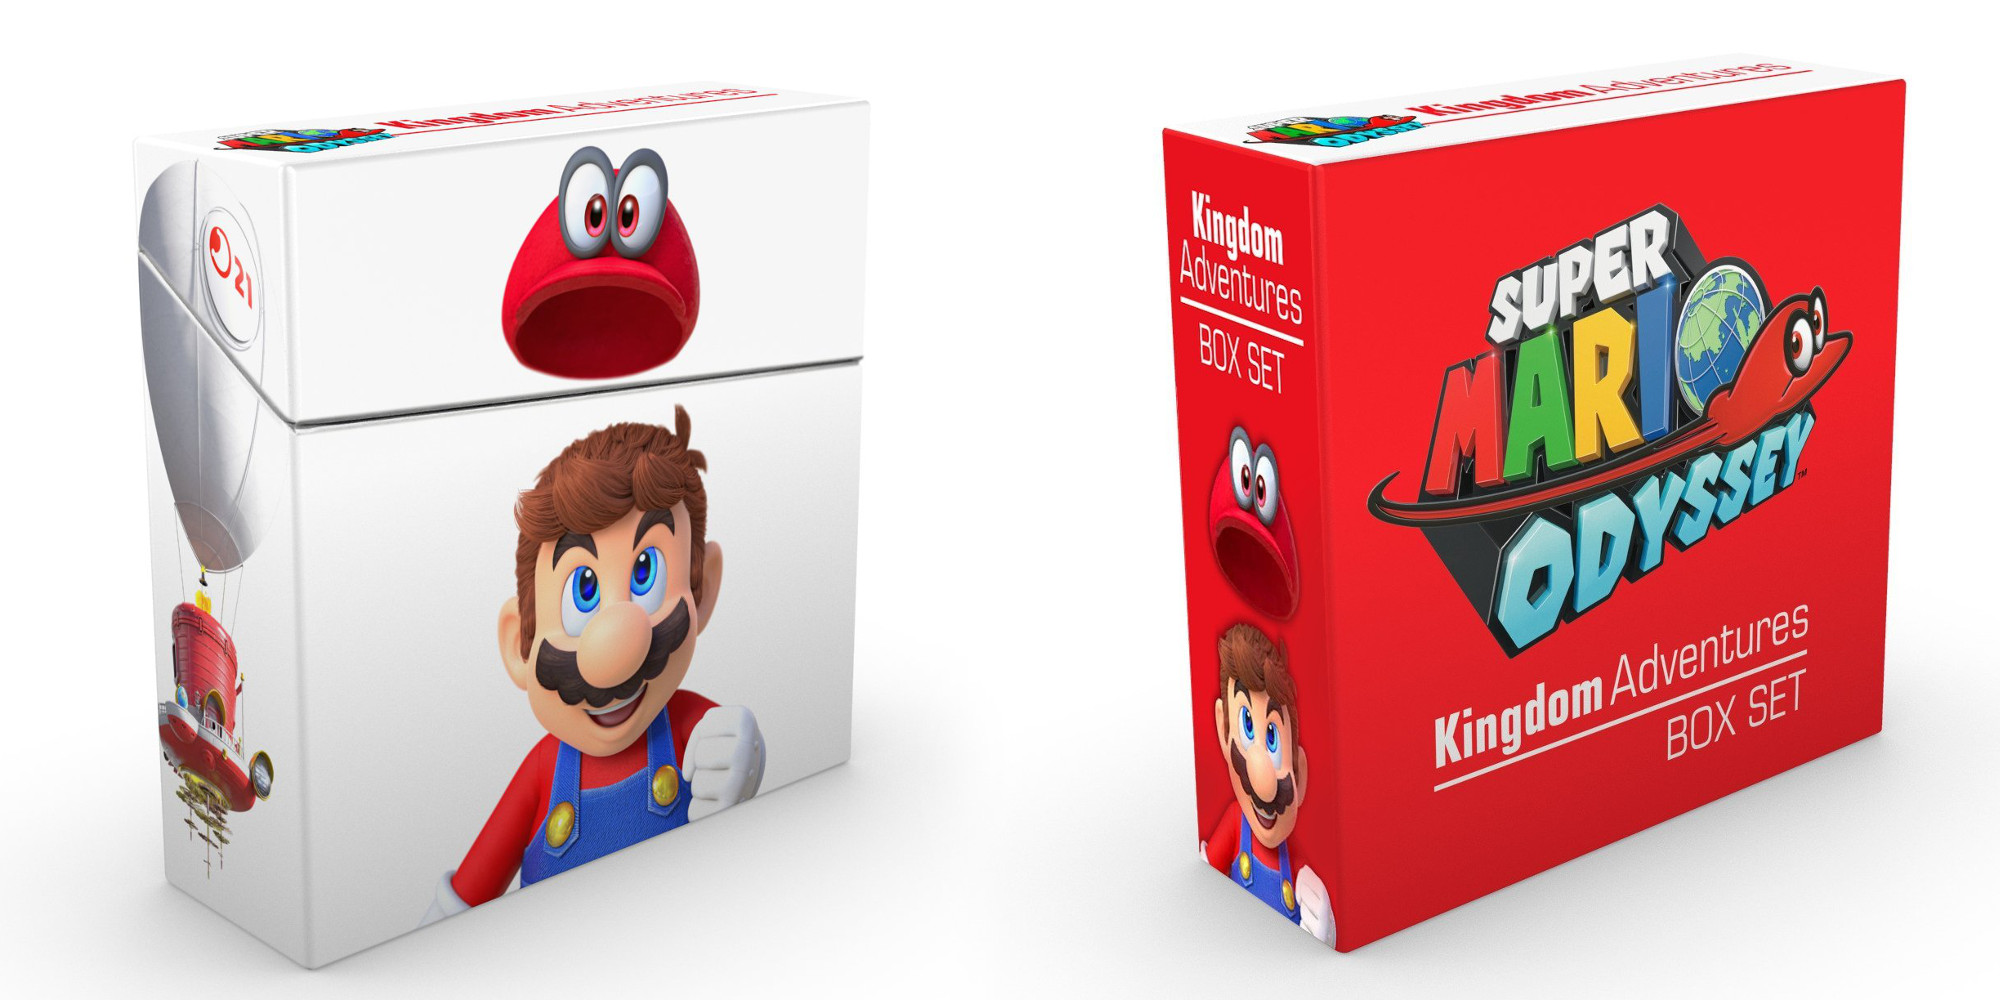 The Super Mario Odyssey Adventures Box Set hits the Amazon low at $34 (Reg. $47+)